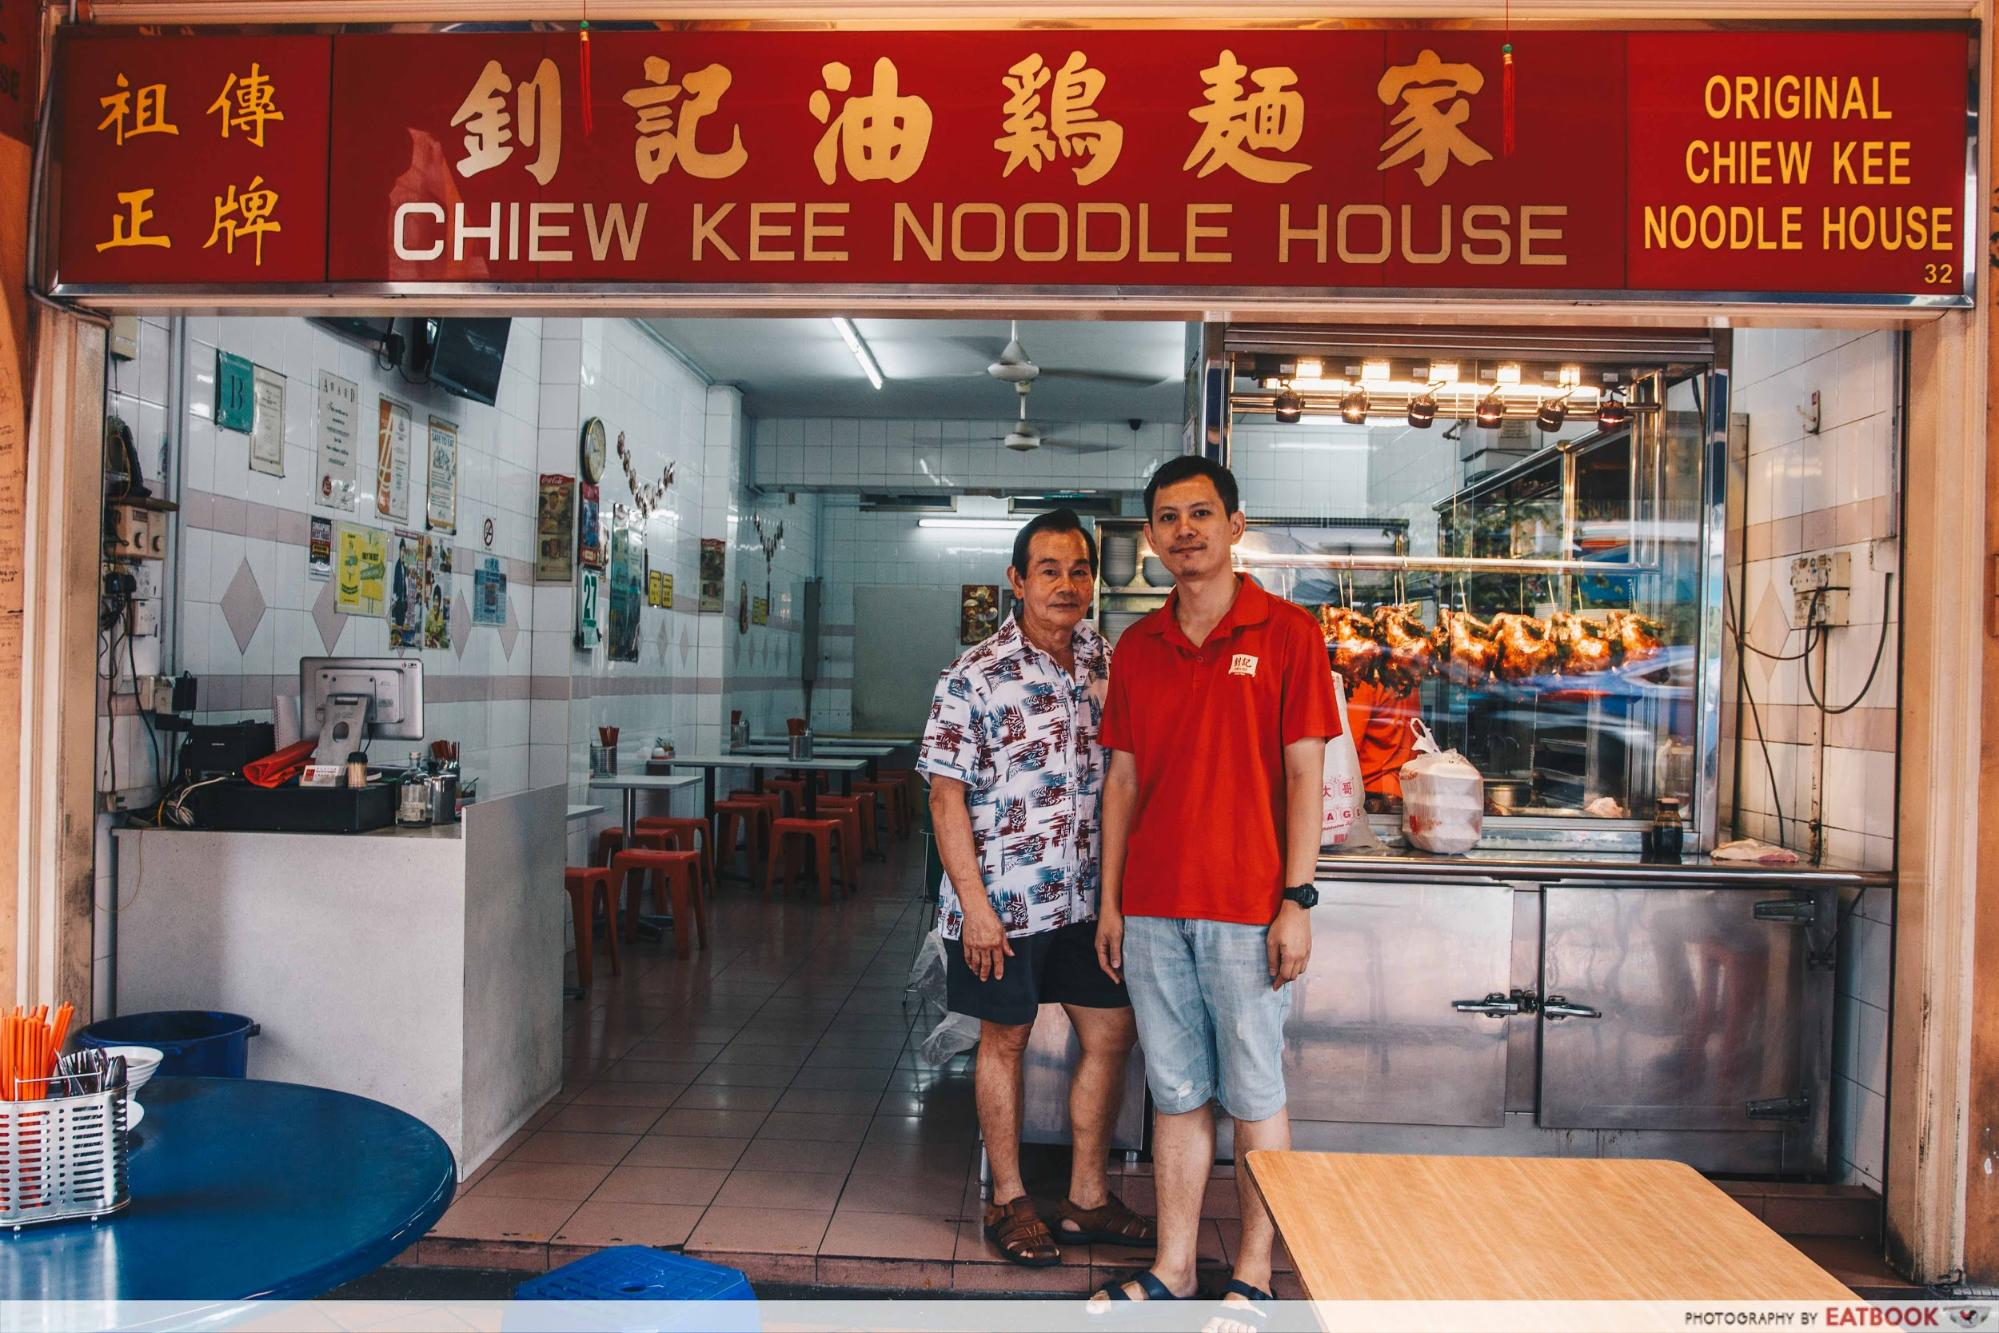 Battle of Chew Kee and Chiew Kee - Chiew Kee storefront